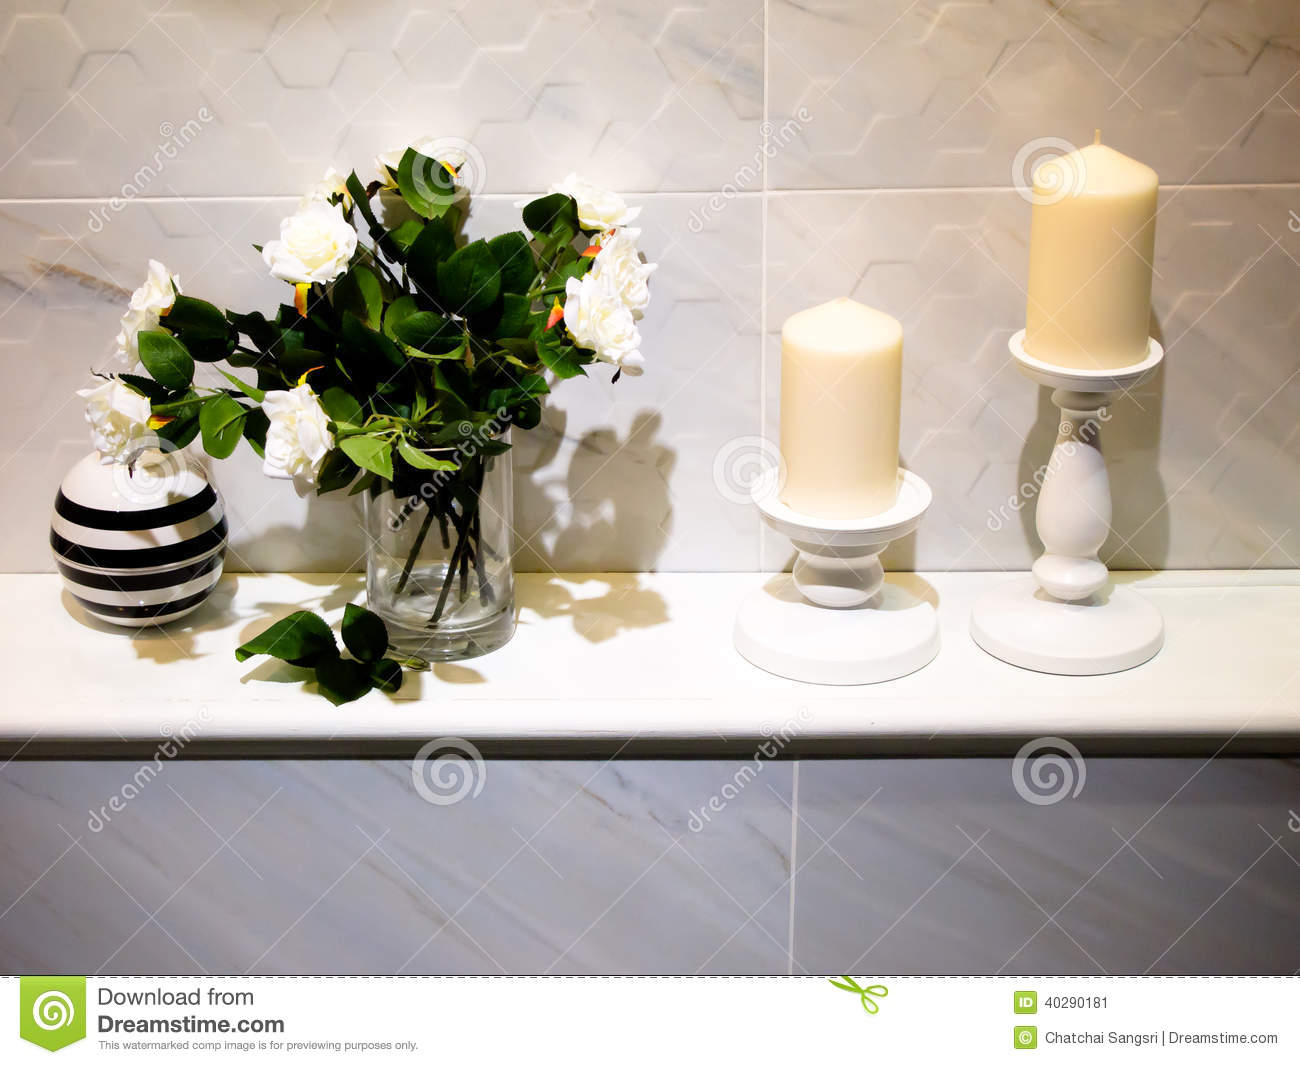 Modern bathroom decoration with candle and rose flower